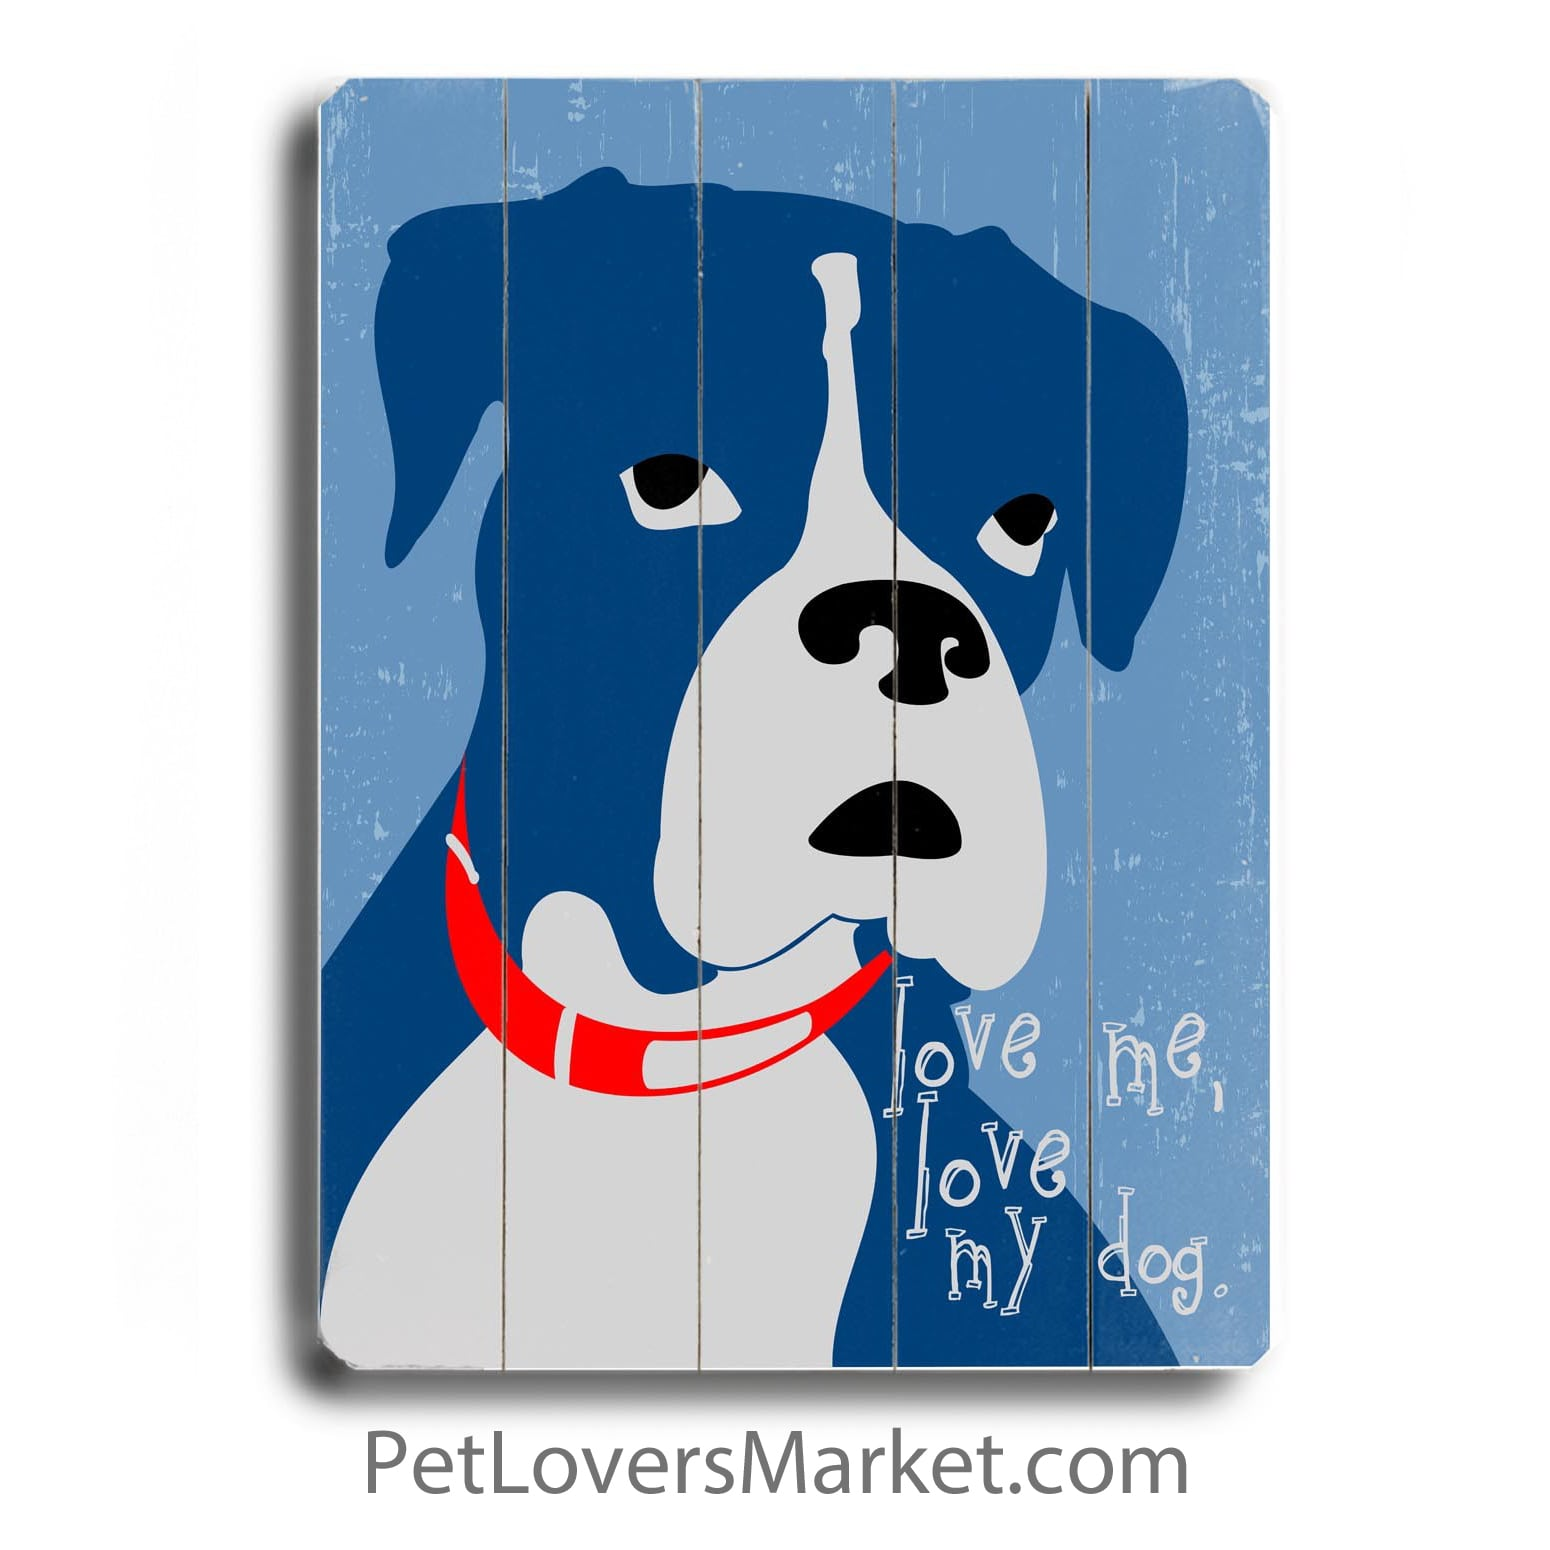 I Love My Dog Quotes Love Me Love My Dog  Wooden Signs With Dog Quotes